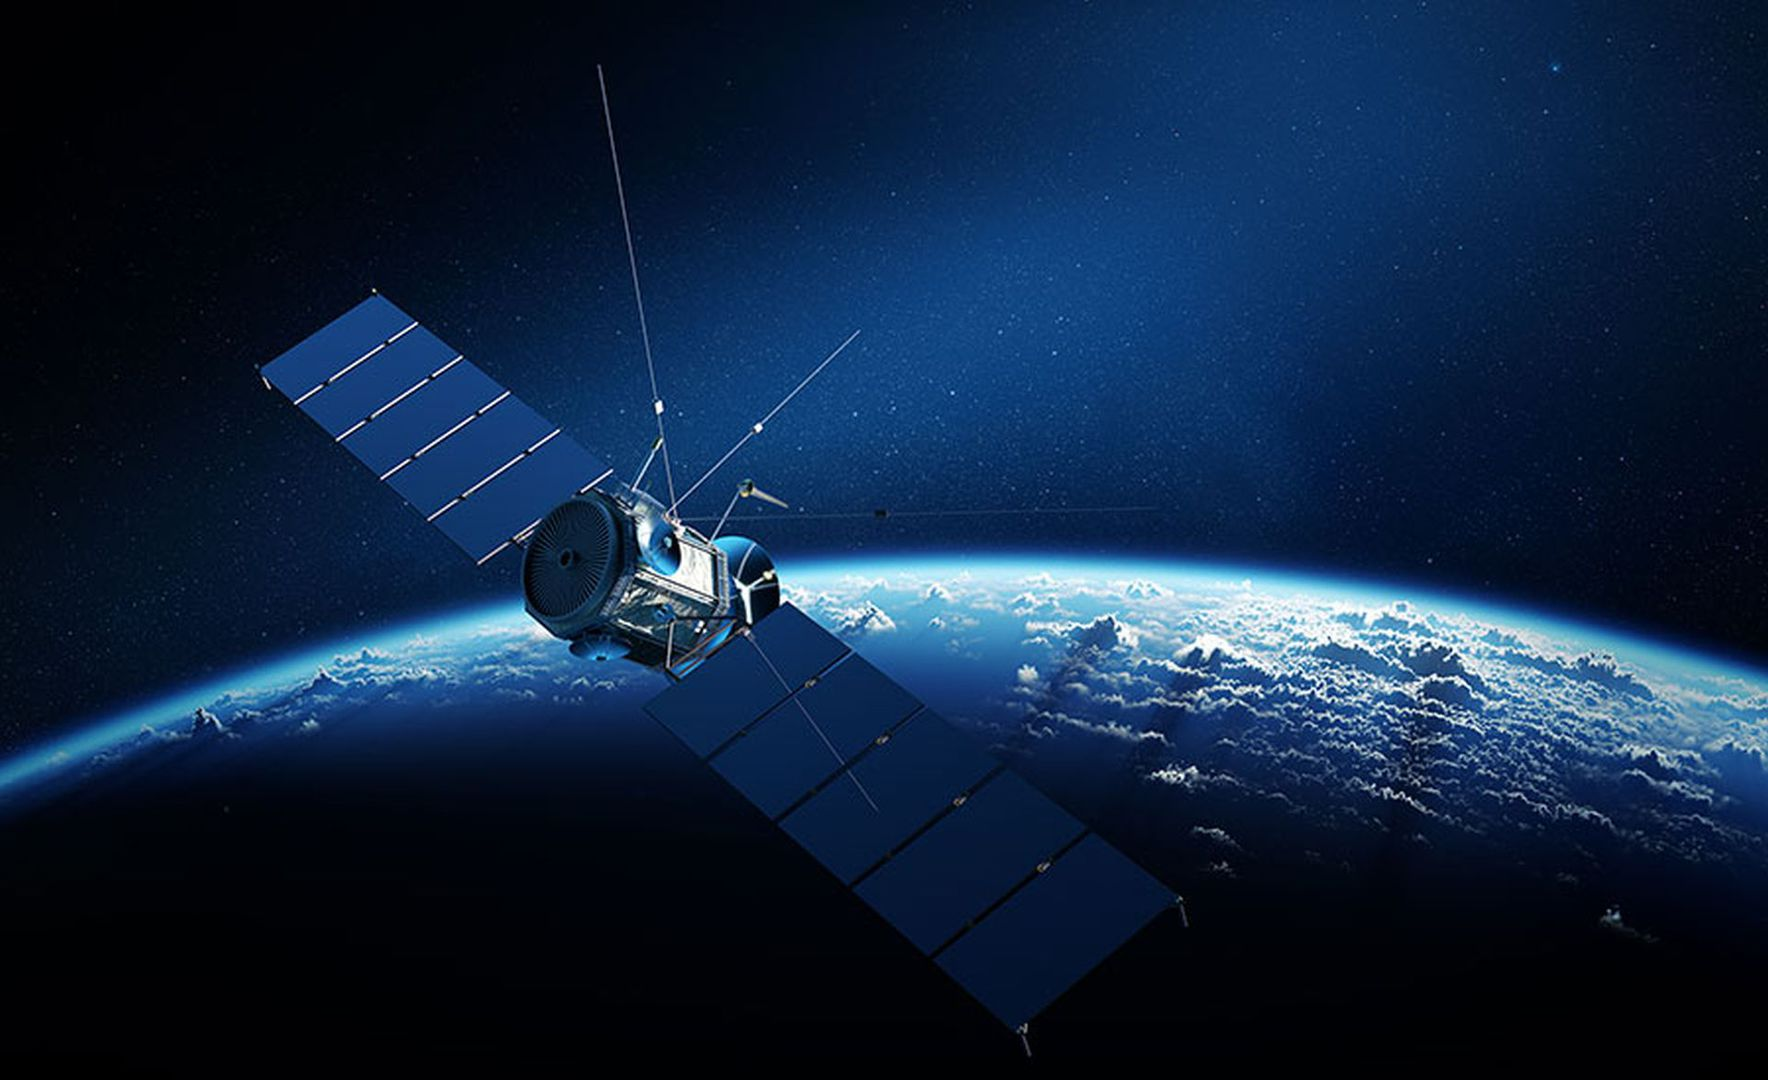 Hackers could shut down satellites – or turn them into weapons